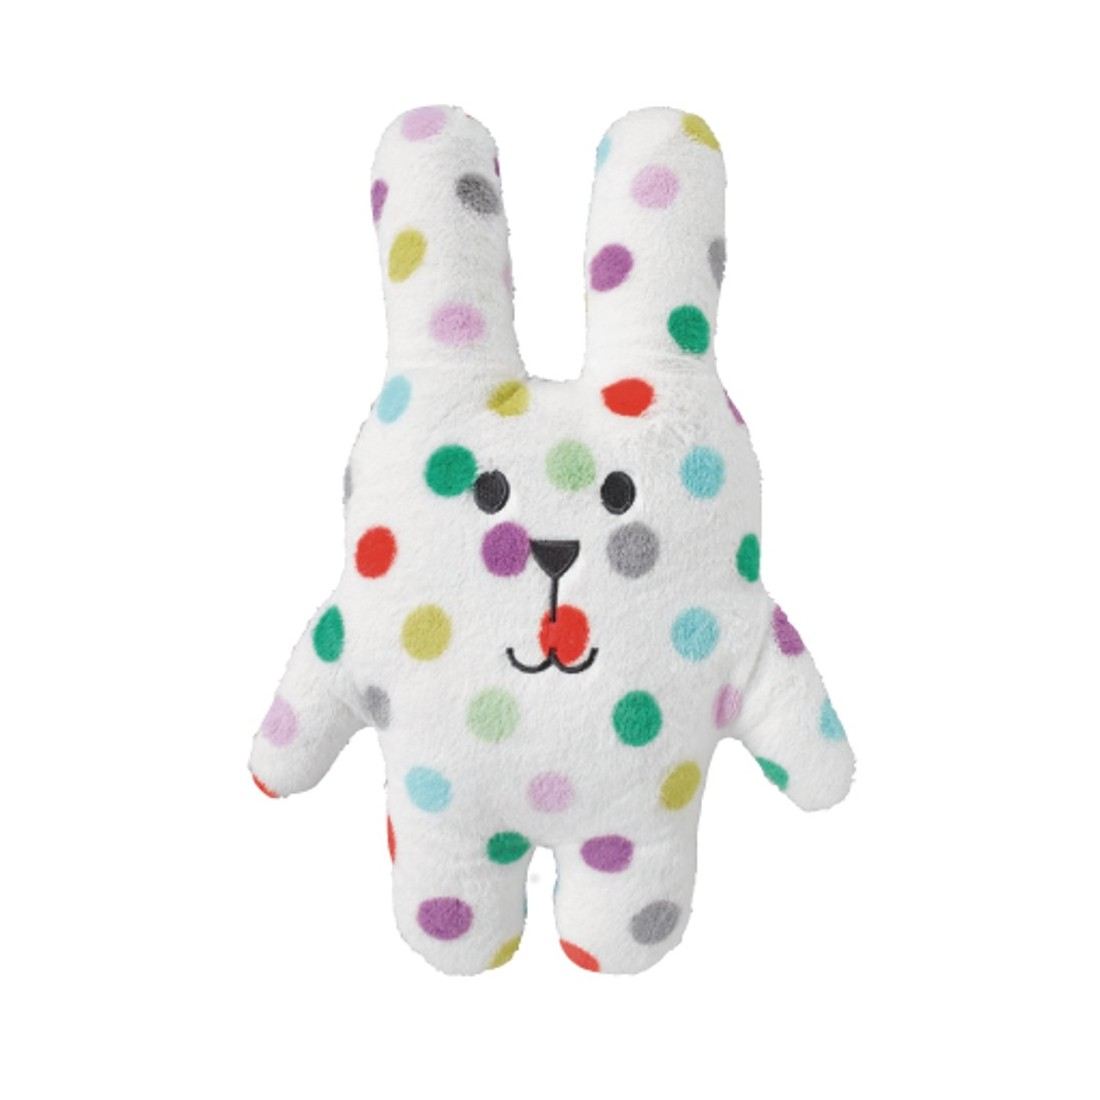 Doudou coussin lapin- Collection Standard